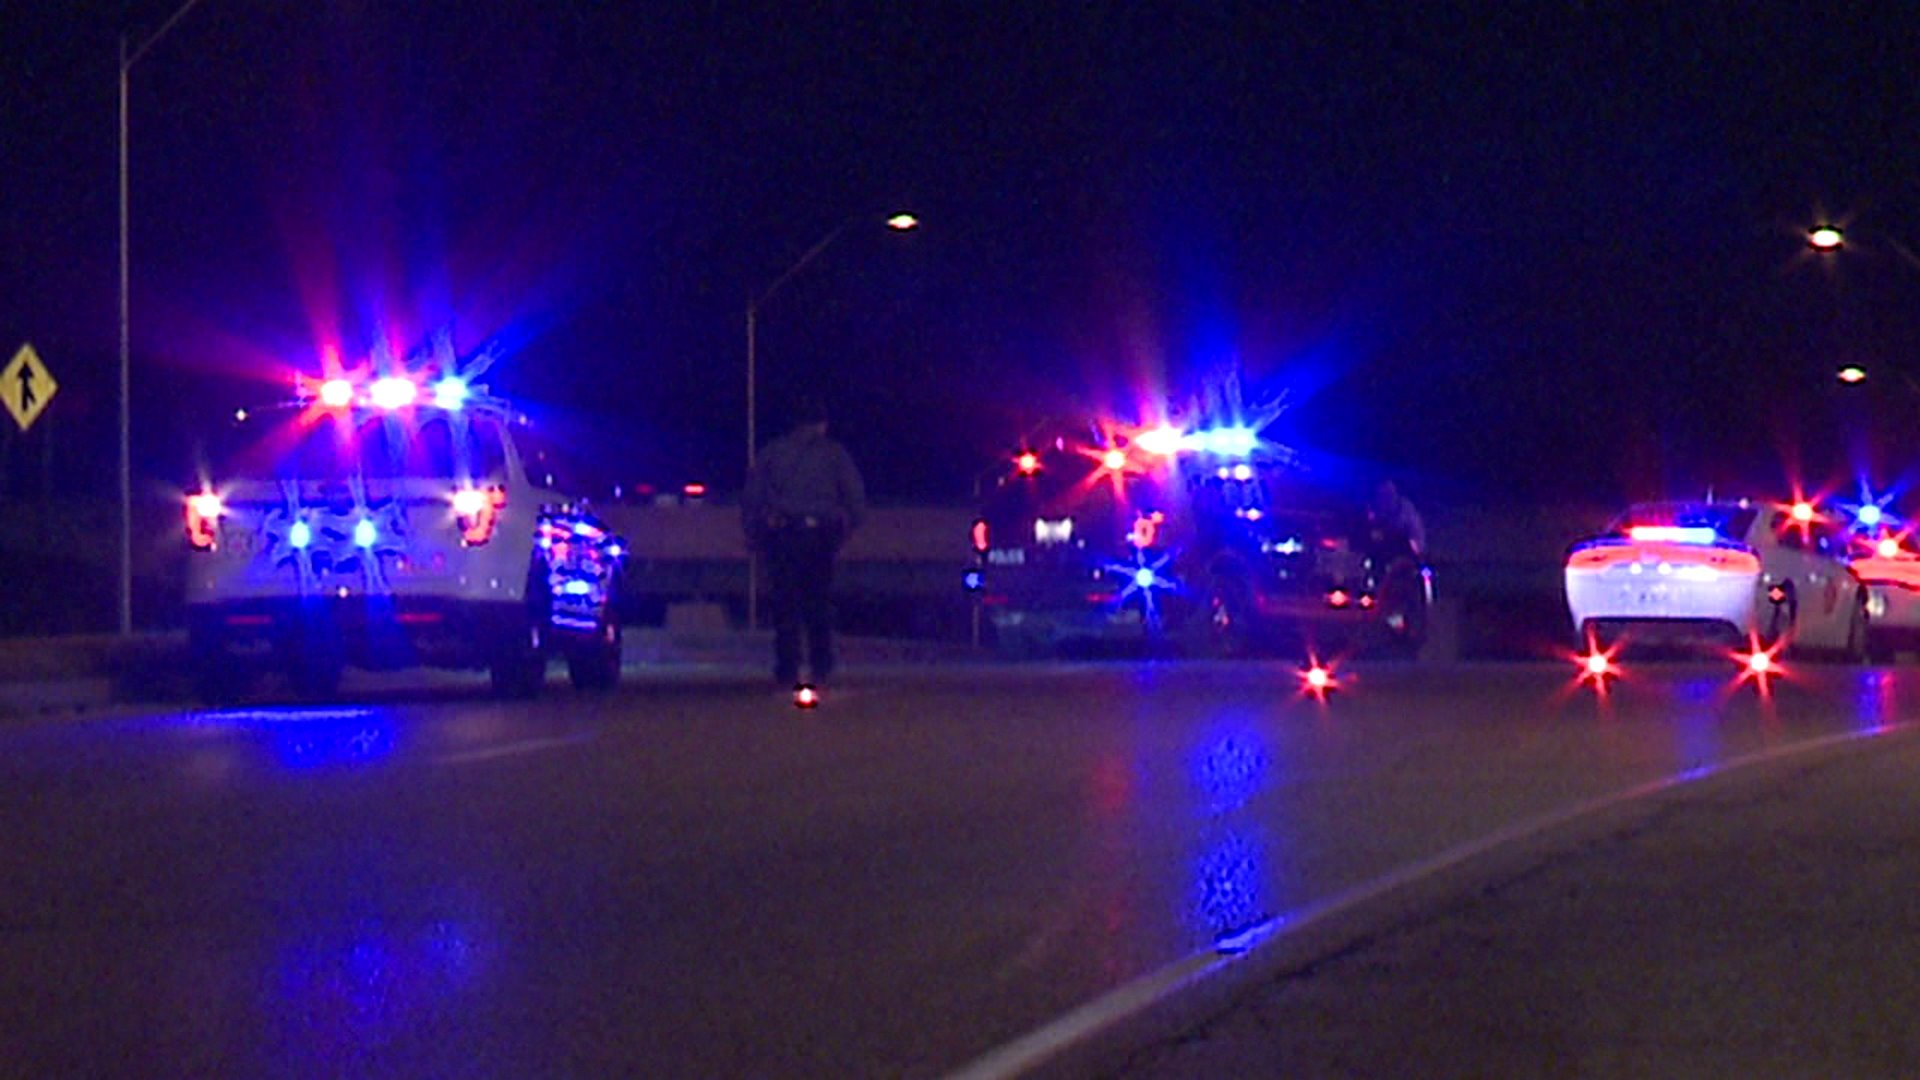 A Gladstone, Mo., police officer was shot during a traffic stop late Sunday near NW Vivion Road and U.S. 169.